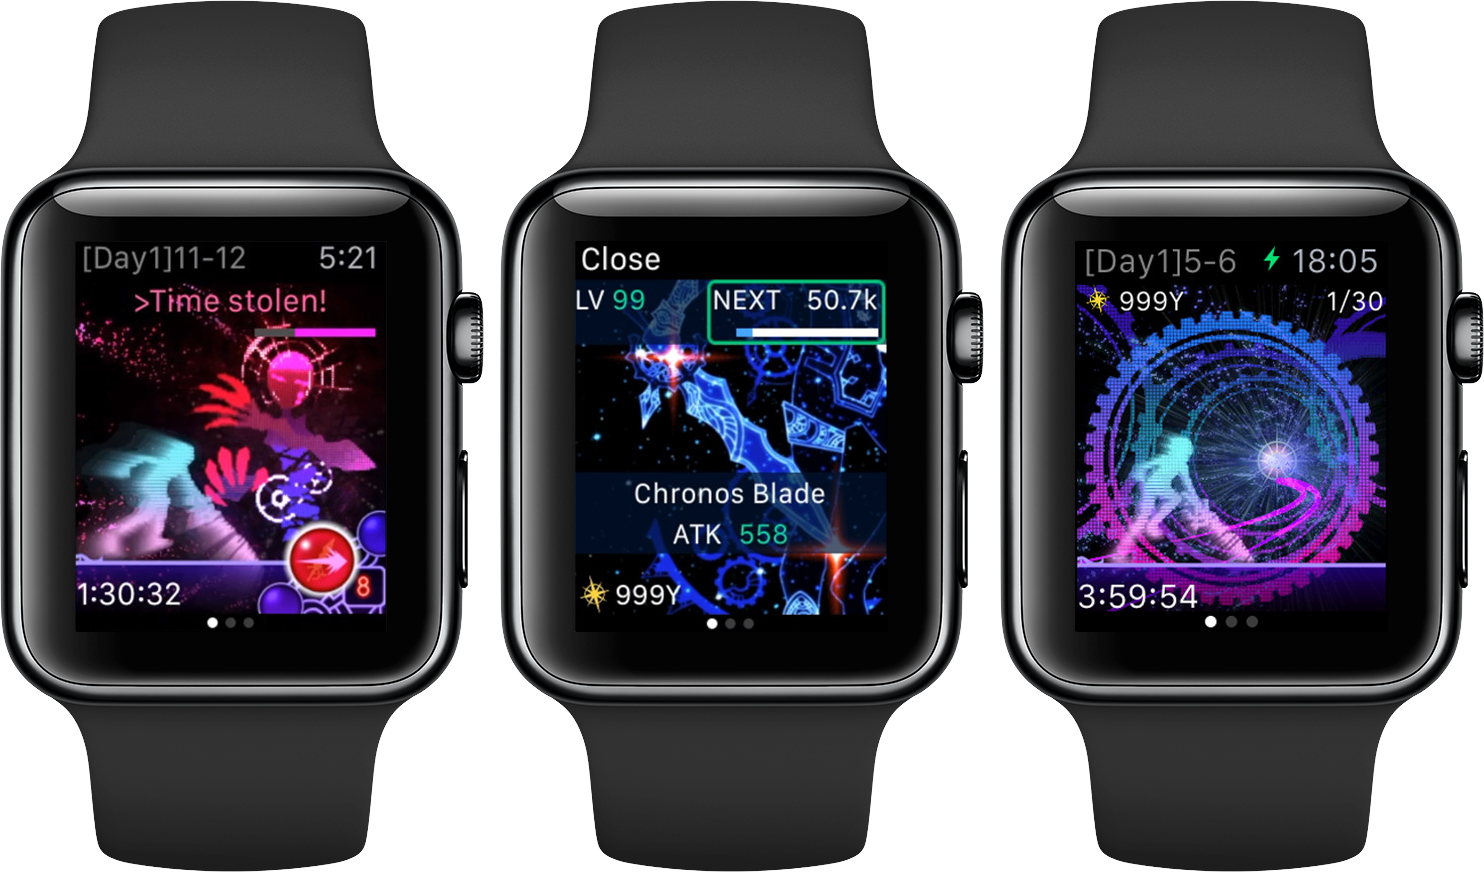 Cosmos Rings for watchOS Apple Watch screenshot 001